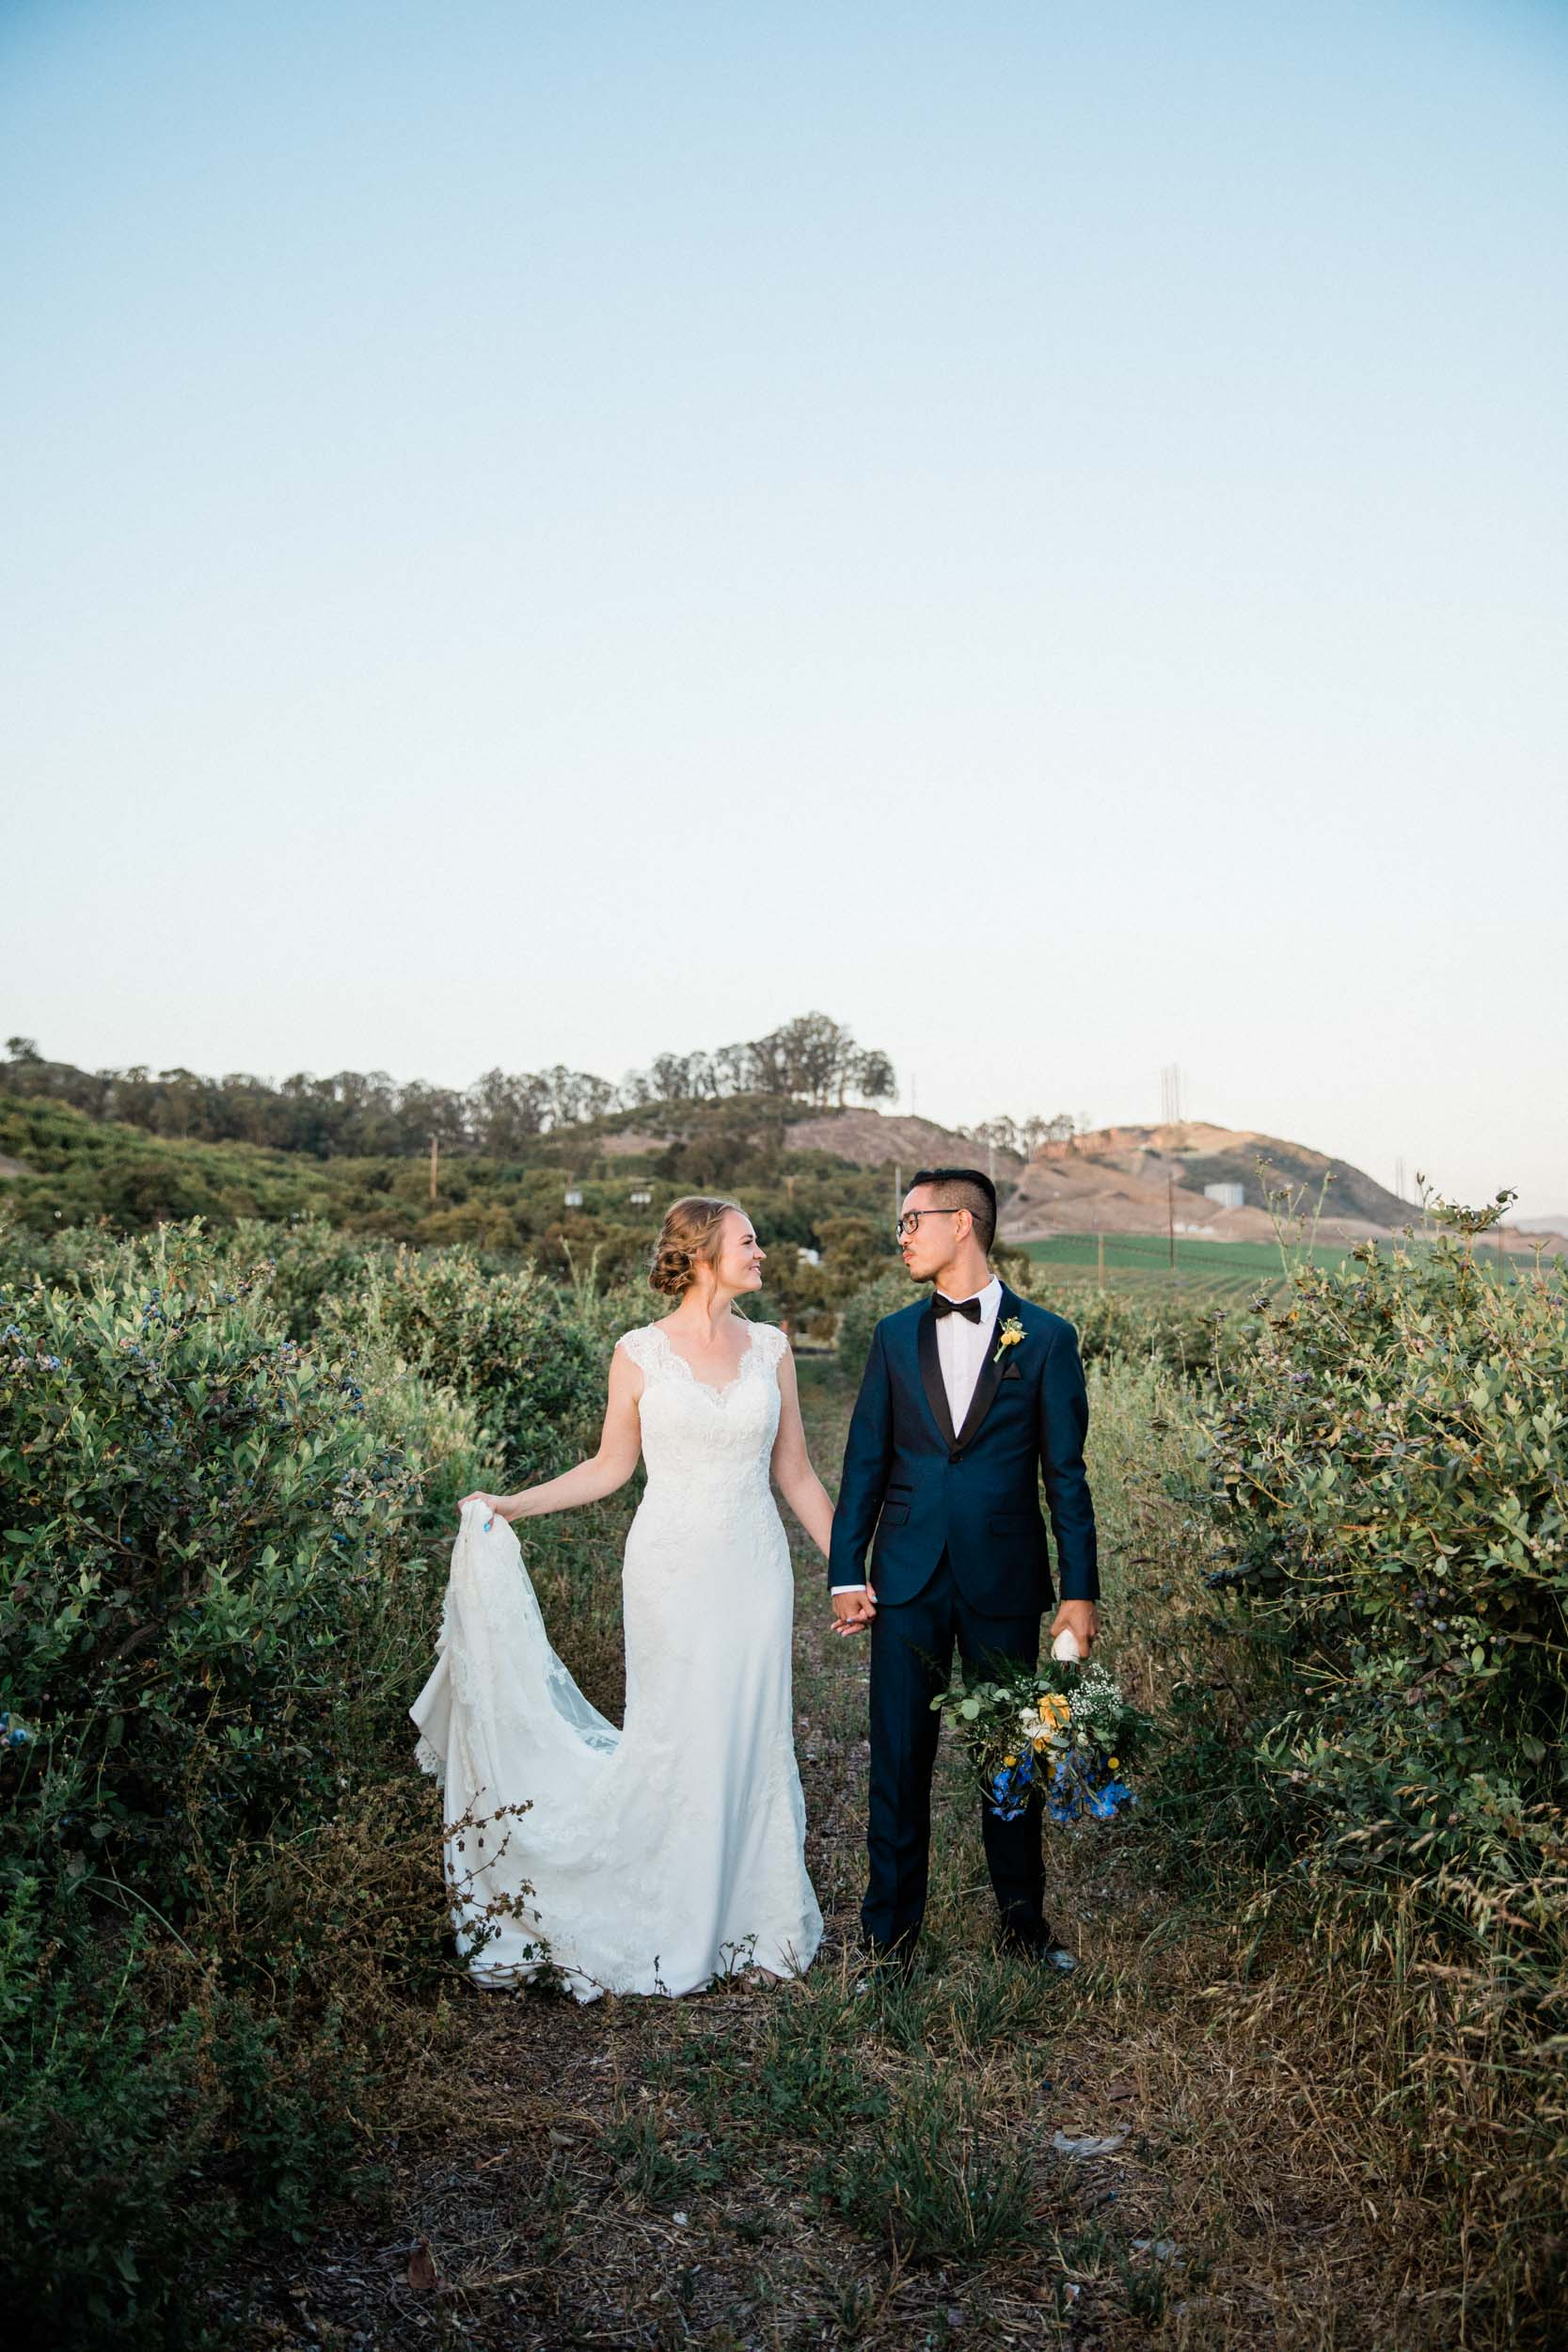 BKM-Photography-Gerry-Ranch-Southern-California-Wedding-0104.jpg